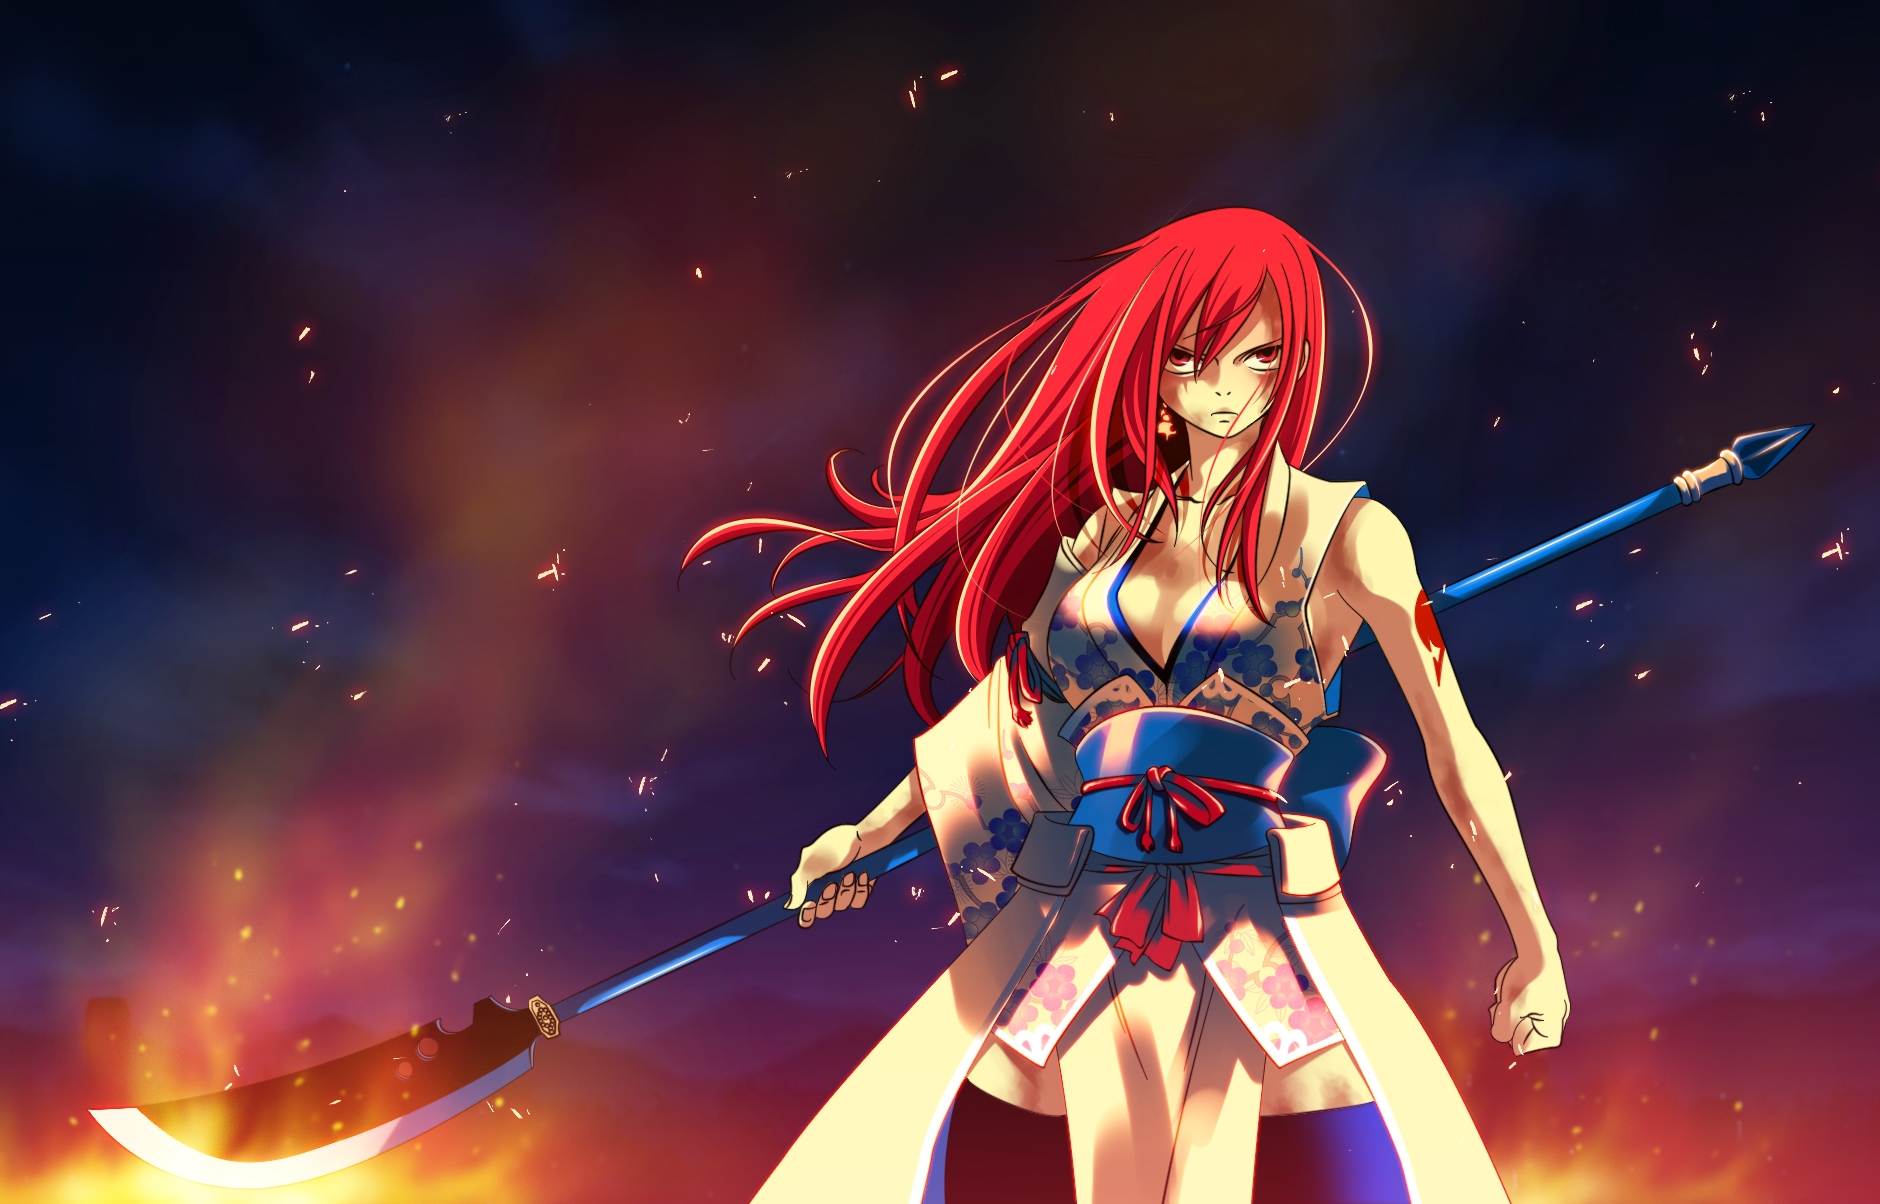 46 Erza Scarlet Wallpaper Hd On Wallpapersafari Find gifs with the latest and newest hashtags! 46 erza scarlet wallpaper hd on